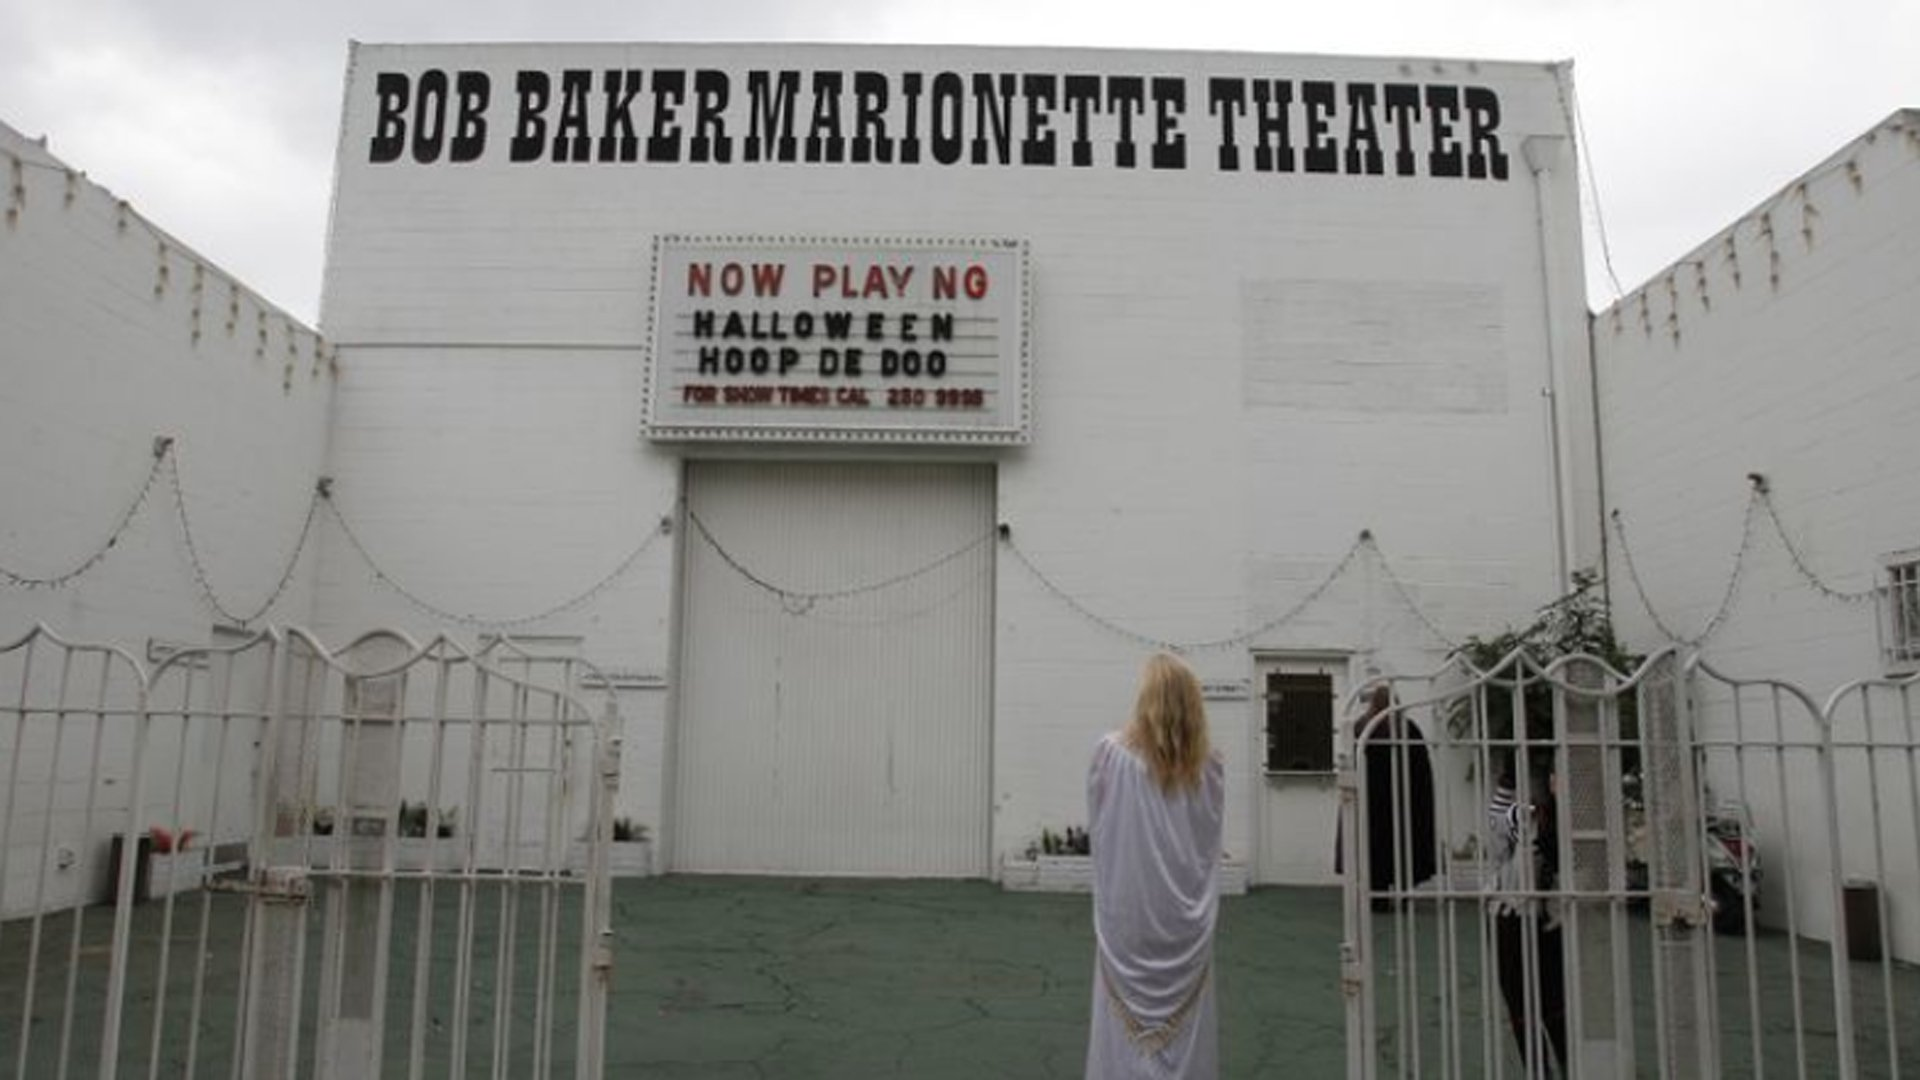 The old Bob Baker Marionette Theater is seen in this undated file photo. (Credit: Allen J. Schaben / Los Angeles Times)